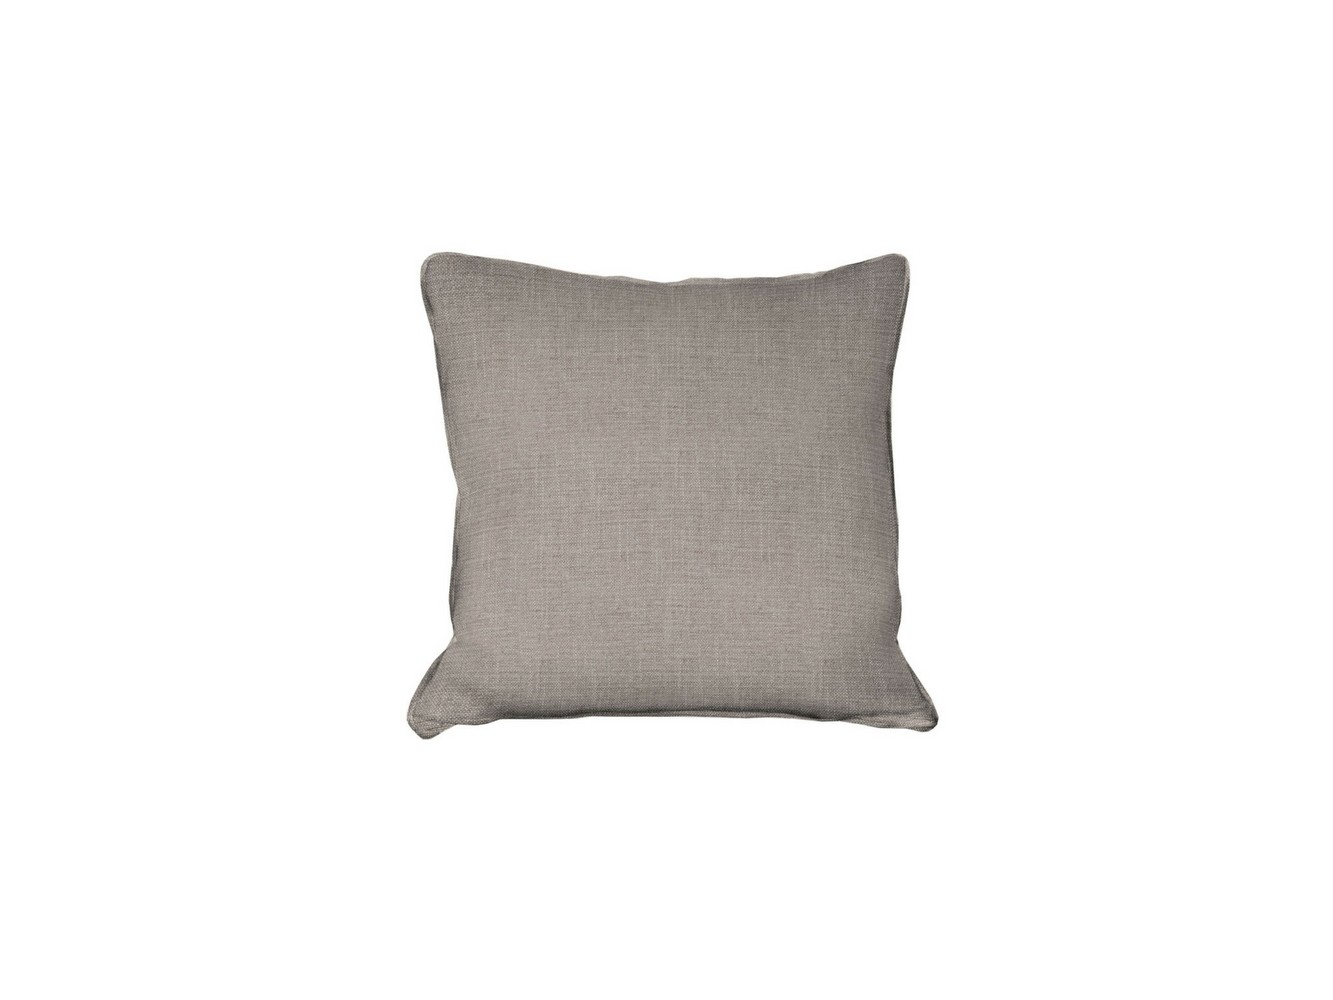 Extra Scatter Cushions - Fabric Blush